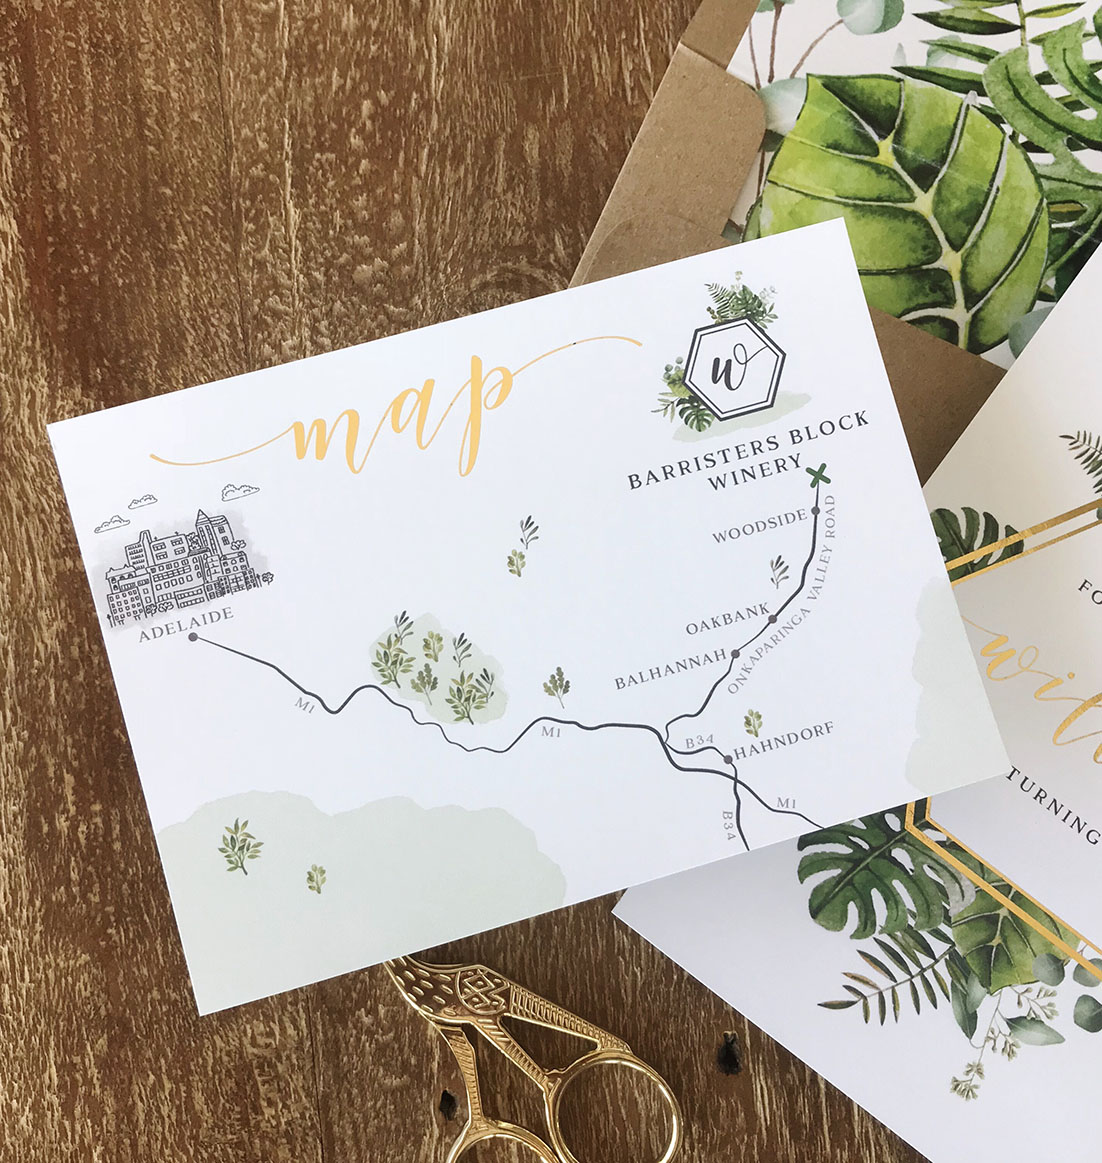 Custom maps really make your stationery a standout!